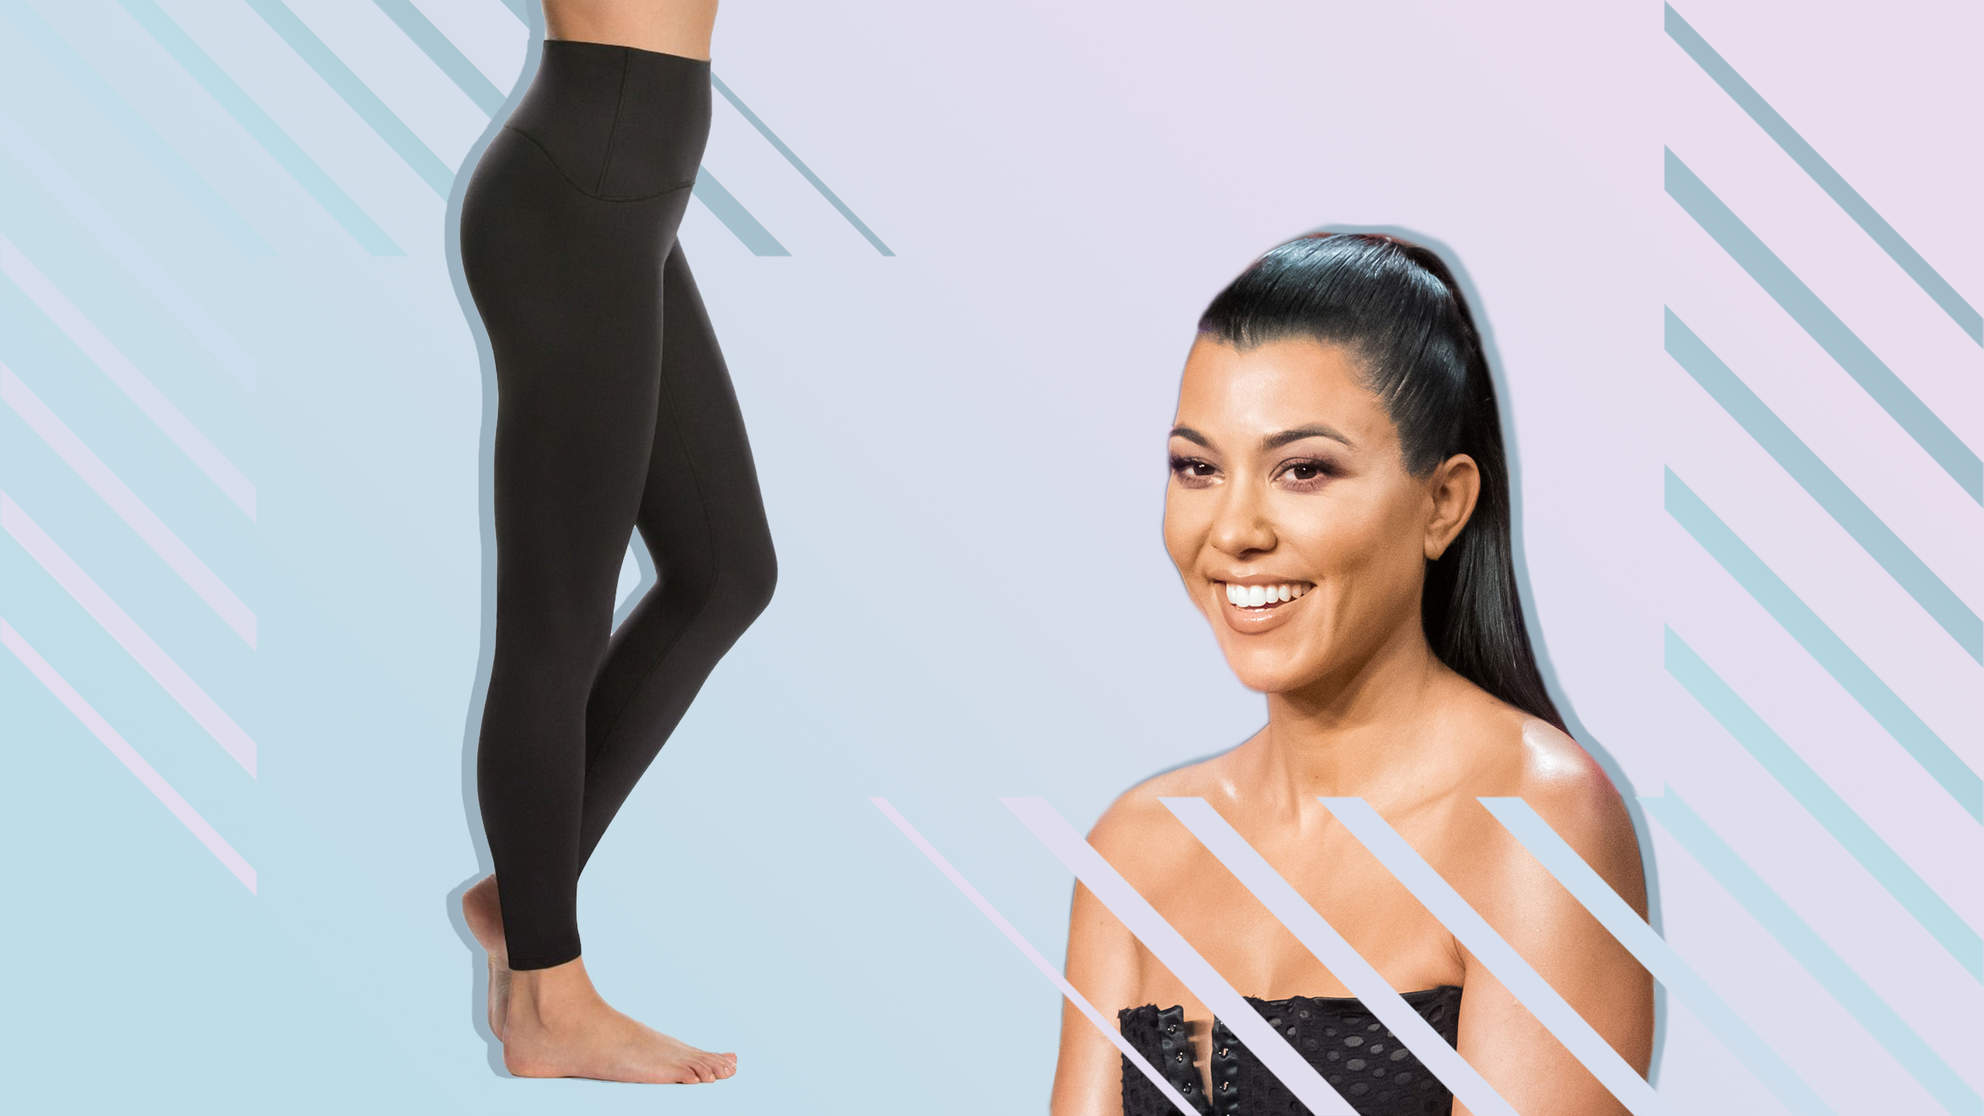 kourtney-kardashian-spanx-leggings kourtney-kardashian spanx-leggings workout gear woman health fitness